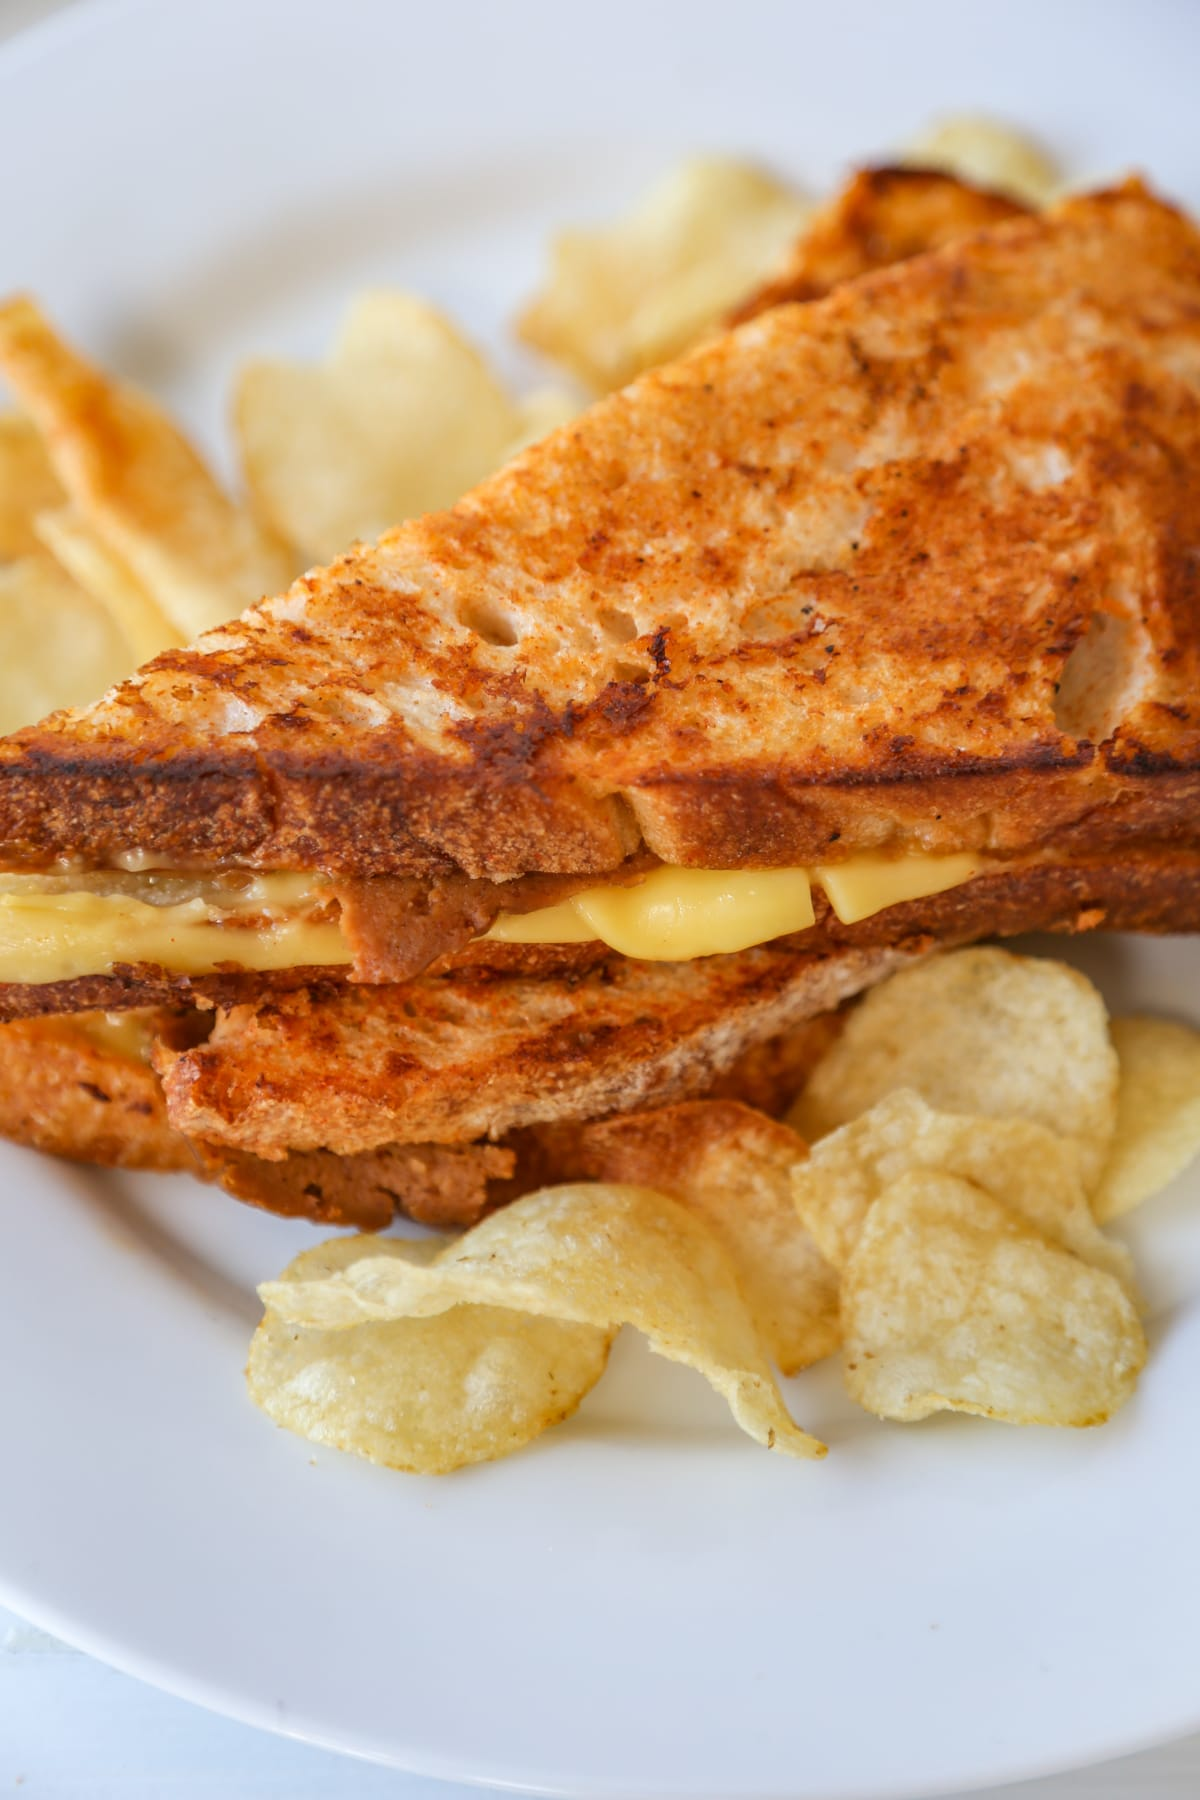 A grilled monte cristo sandwich cut in half in triangles and stacked, with potato chips on a white plate.